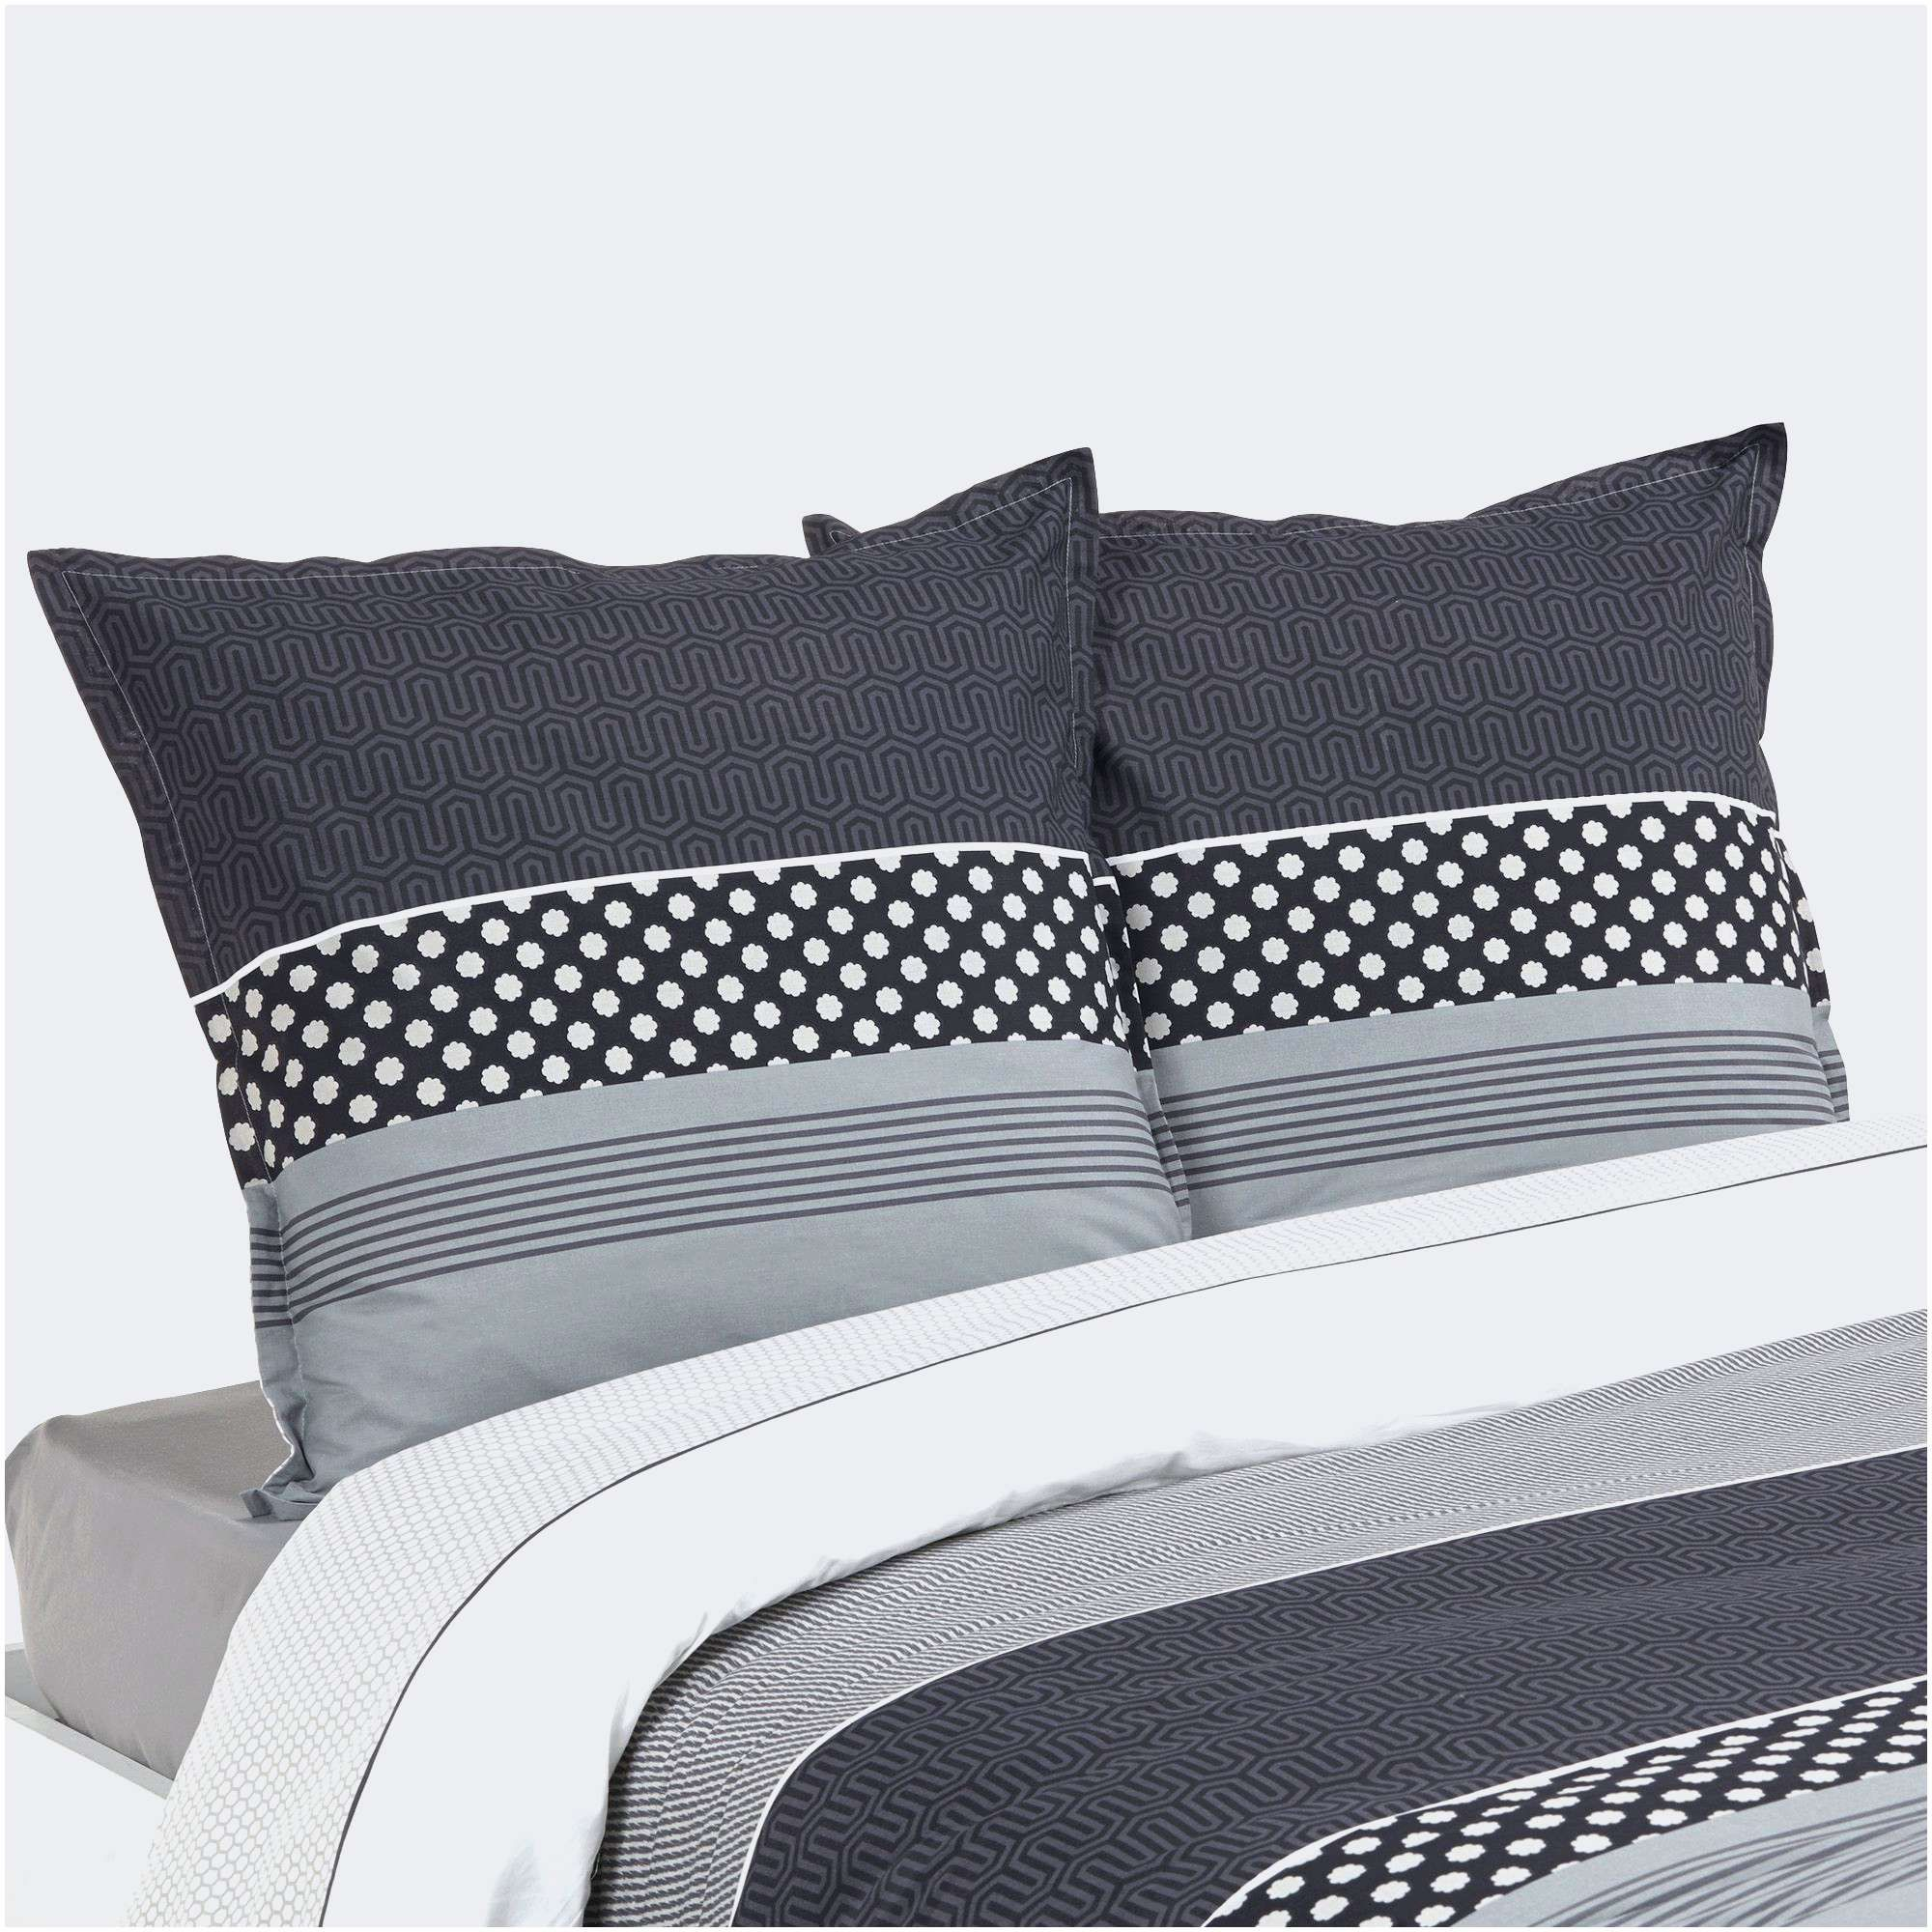 Pin By Ketty Corp On Idees De Meubles Bed Home Blanket